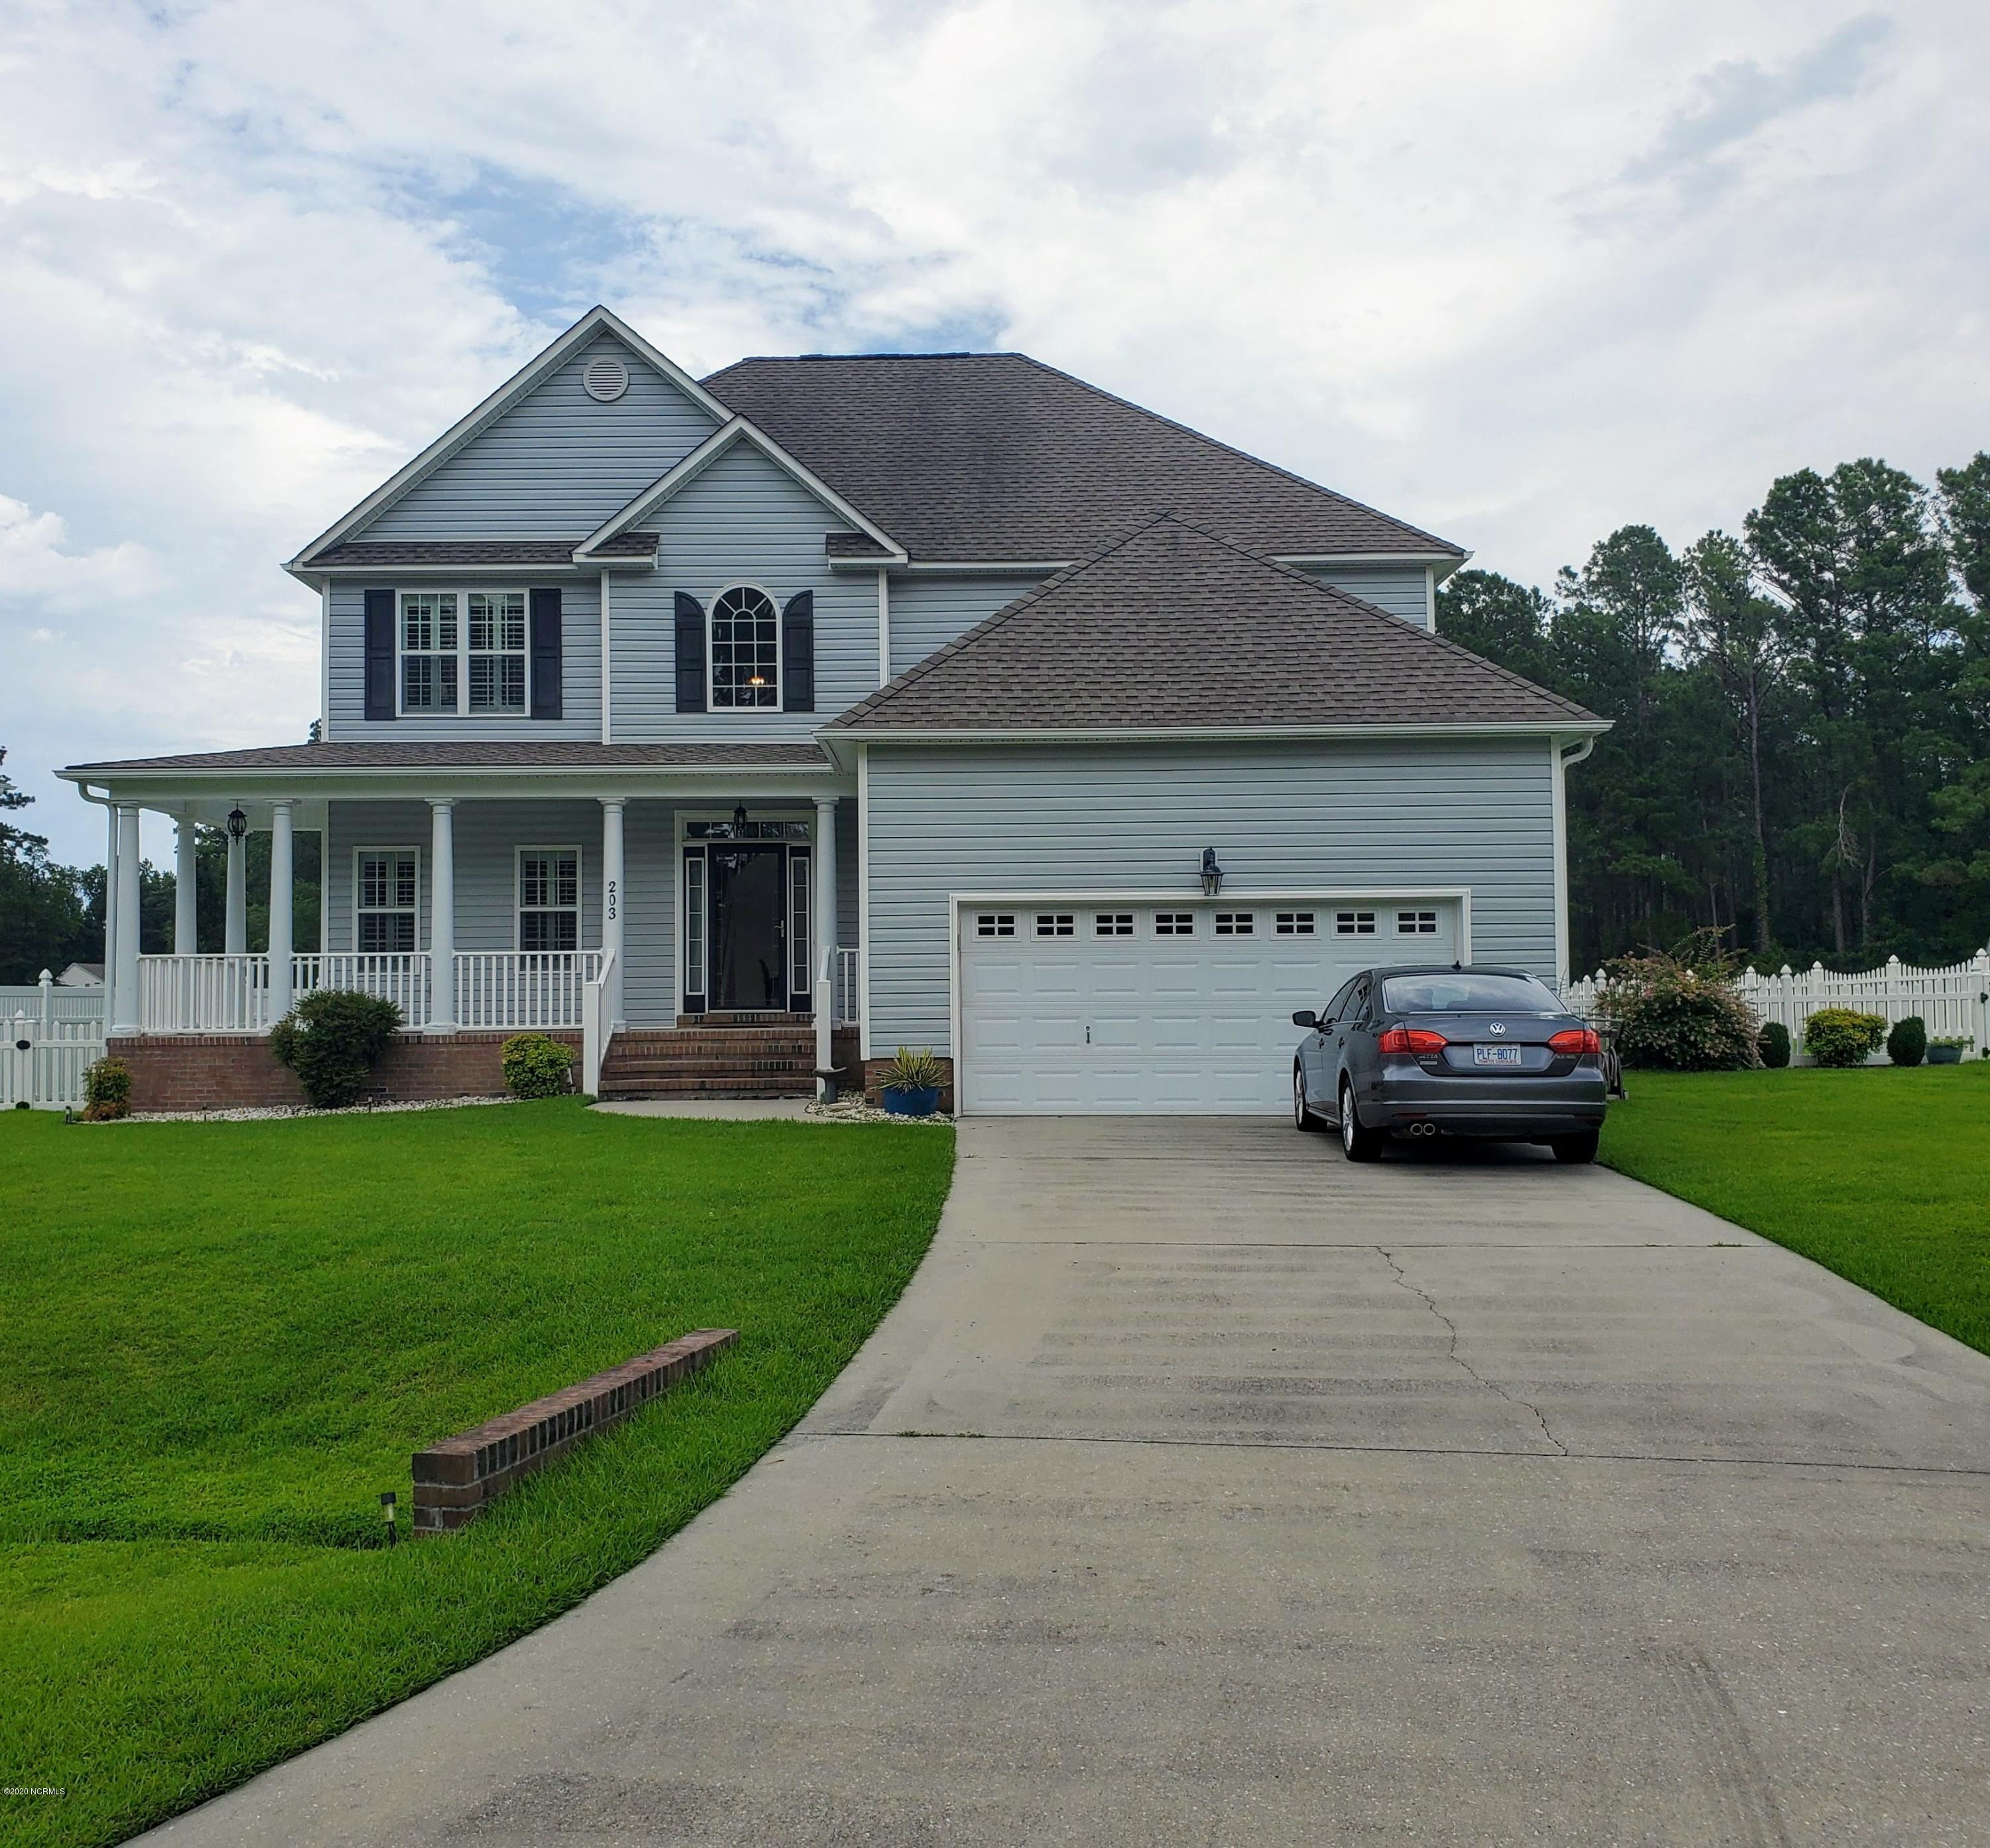 203 Brittany Lane, Stella, North Carolina 28582, 4 Bedrooms Bedrooms, ,2 BathroomsBathrooms,Residential,For Sale,Brittany,100225389